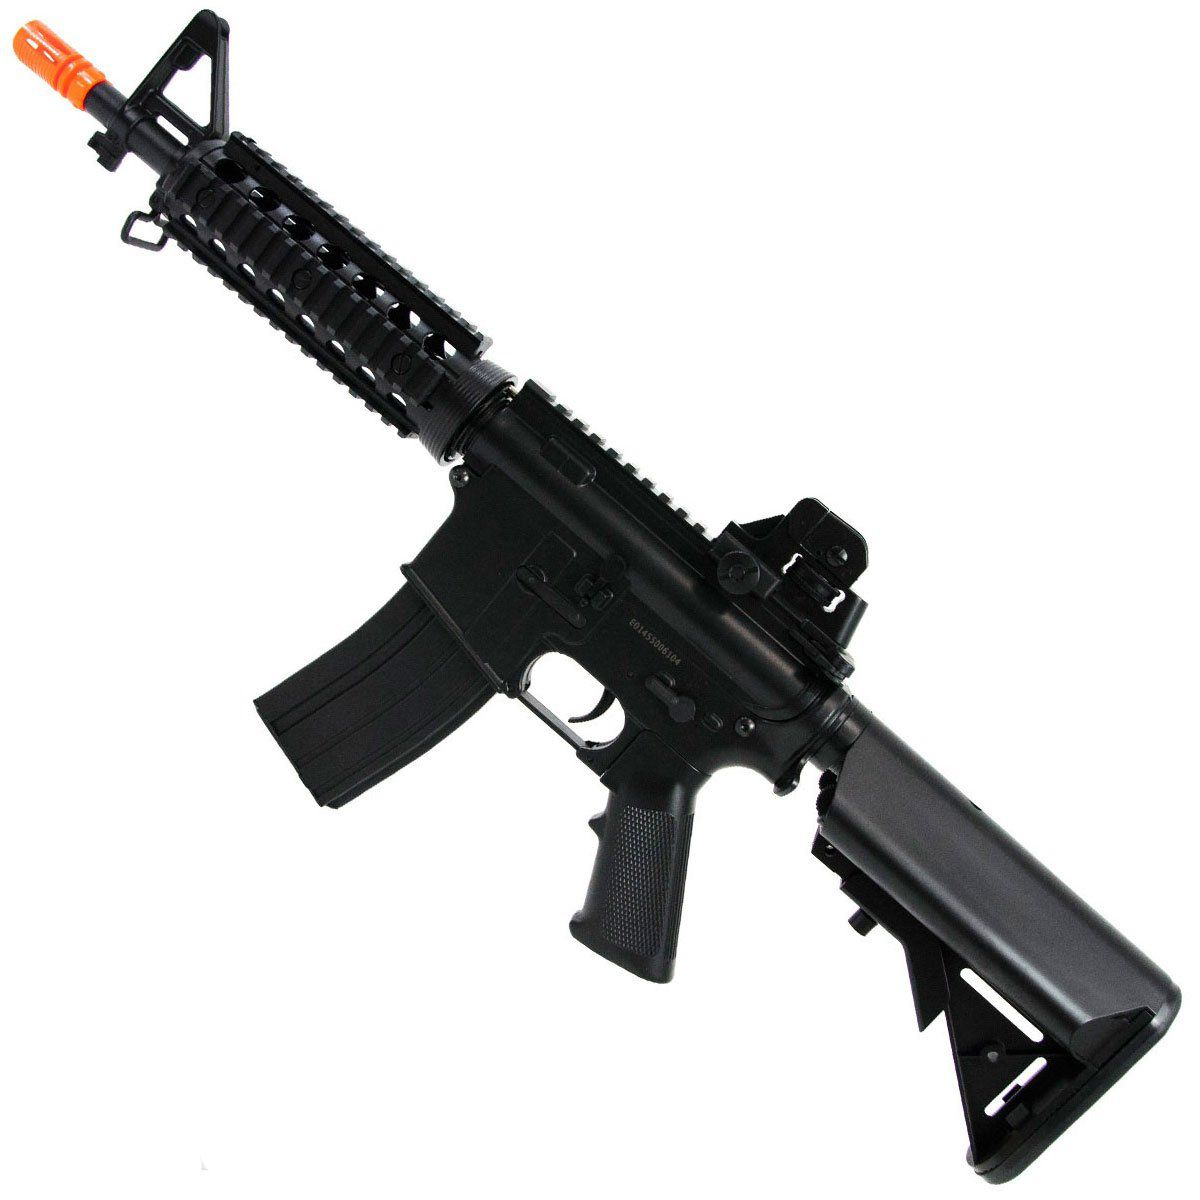 Rifle de Airsoft Cyma M4A1 Ris CM506 Elétrico Calibre 6mm